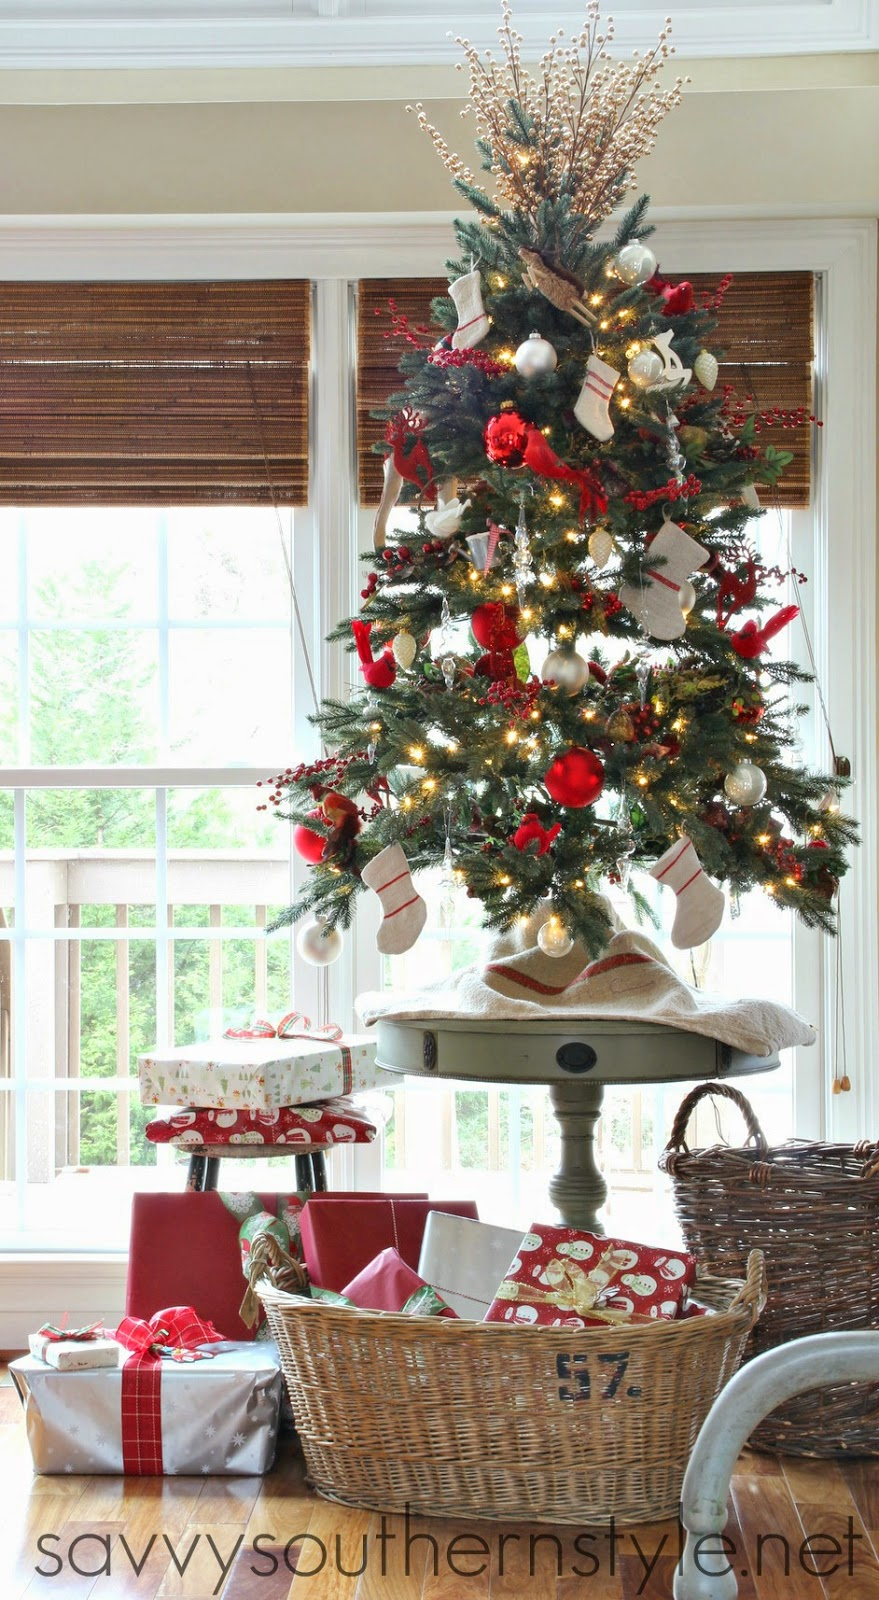 Savvy southern style oh little christmas tree - Small christmas tree ideas ...